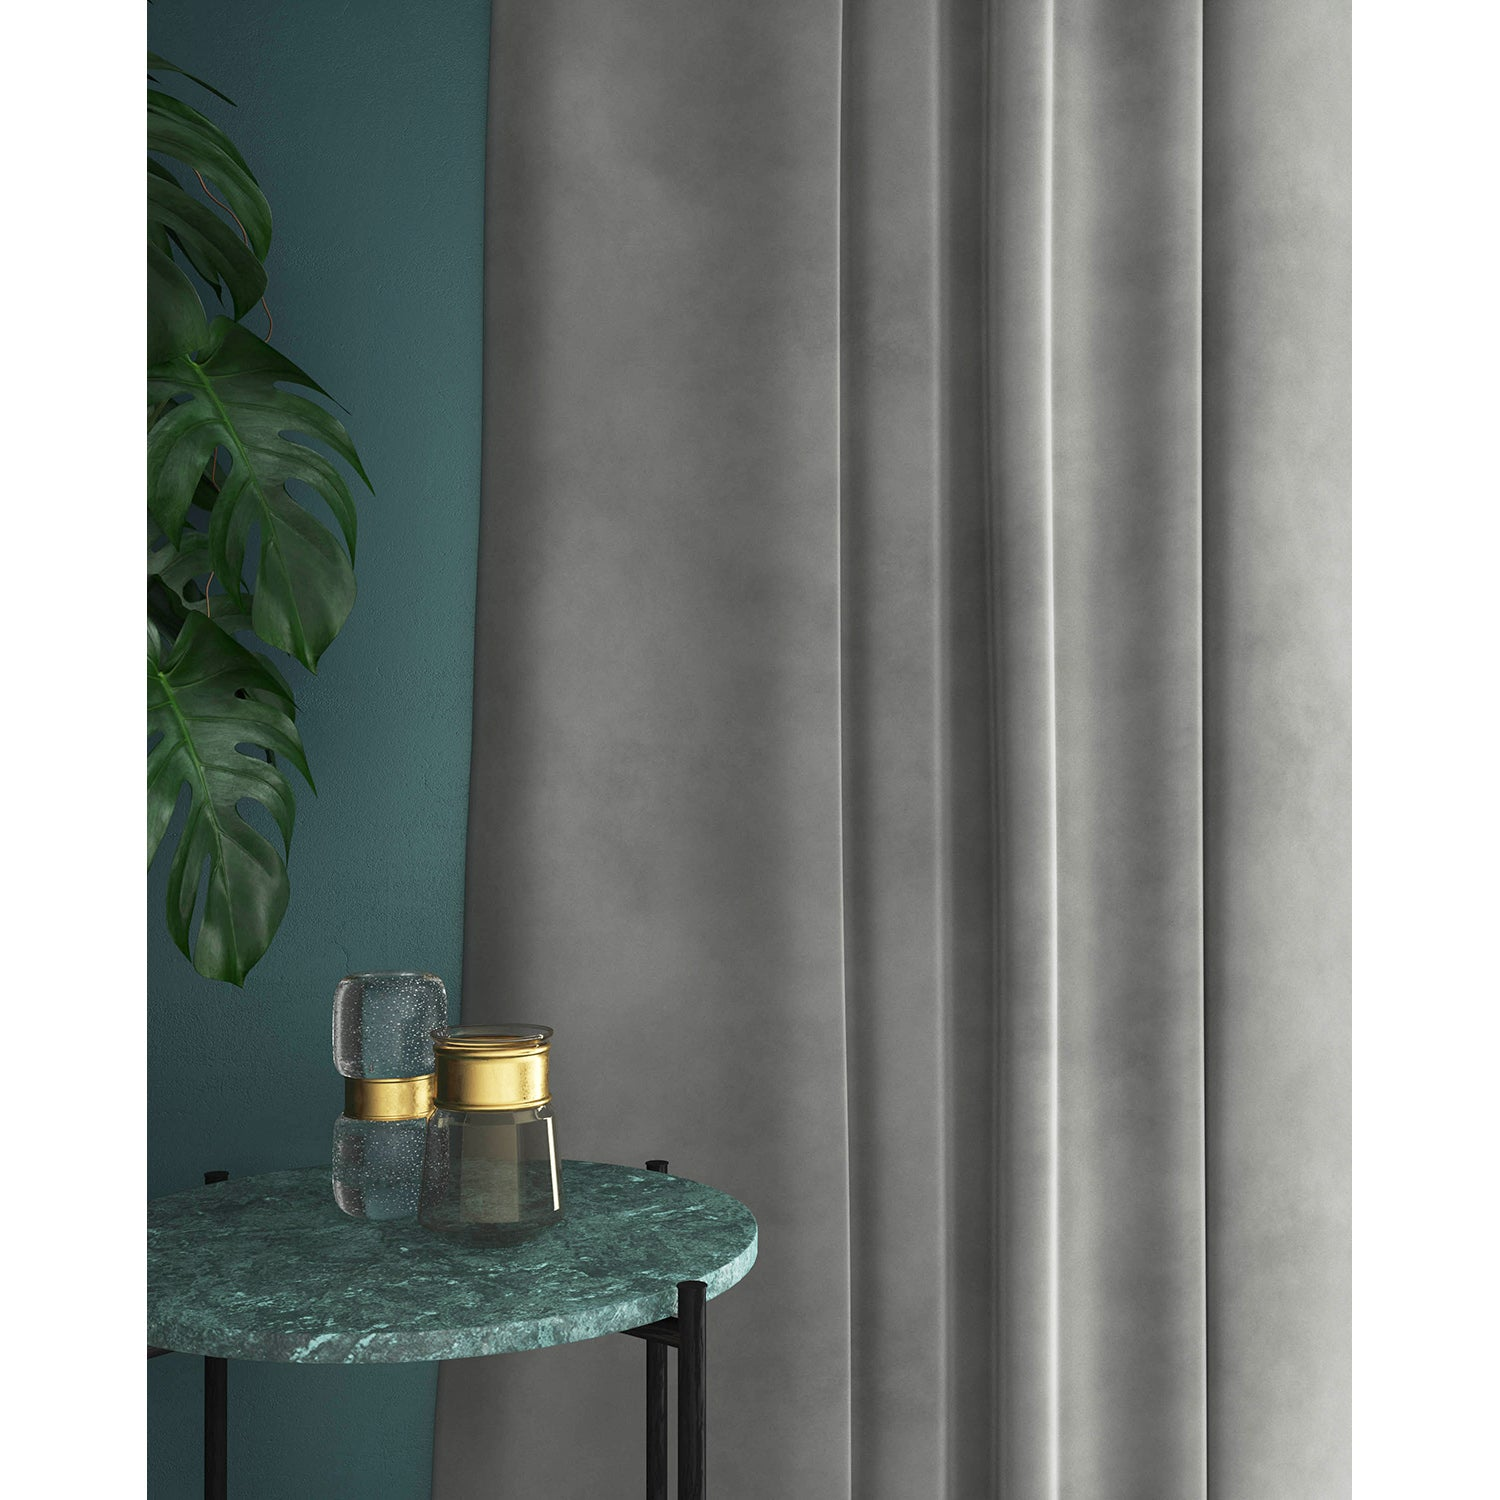 Curtains in a plain grey velvet fabric with a stain resistant finish